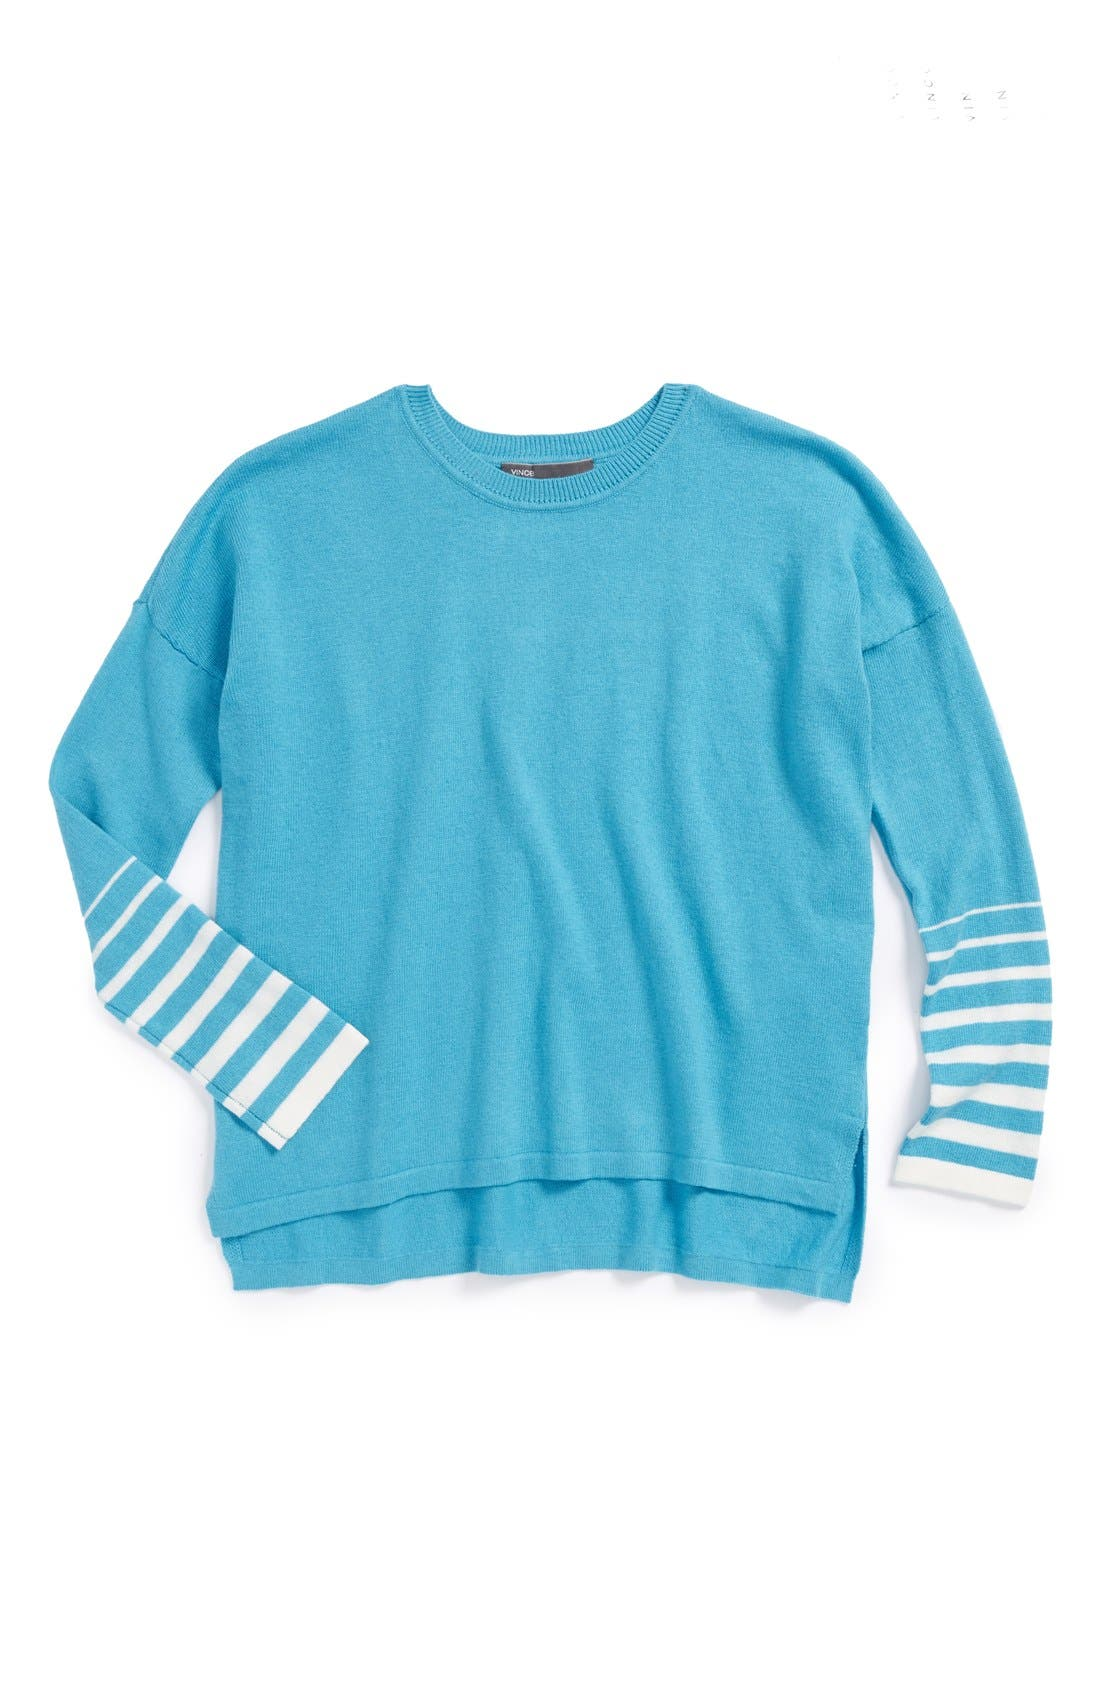 Alternate Image 1 Selected - Vince Side Split Cotton & Cashmere Crewneck Sweater (Big Girls)